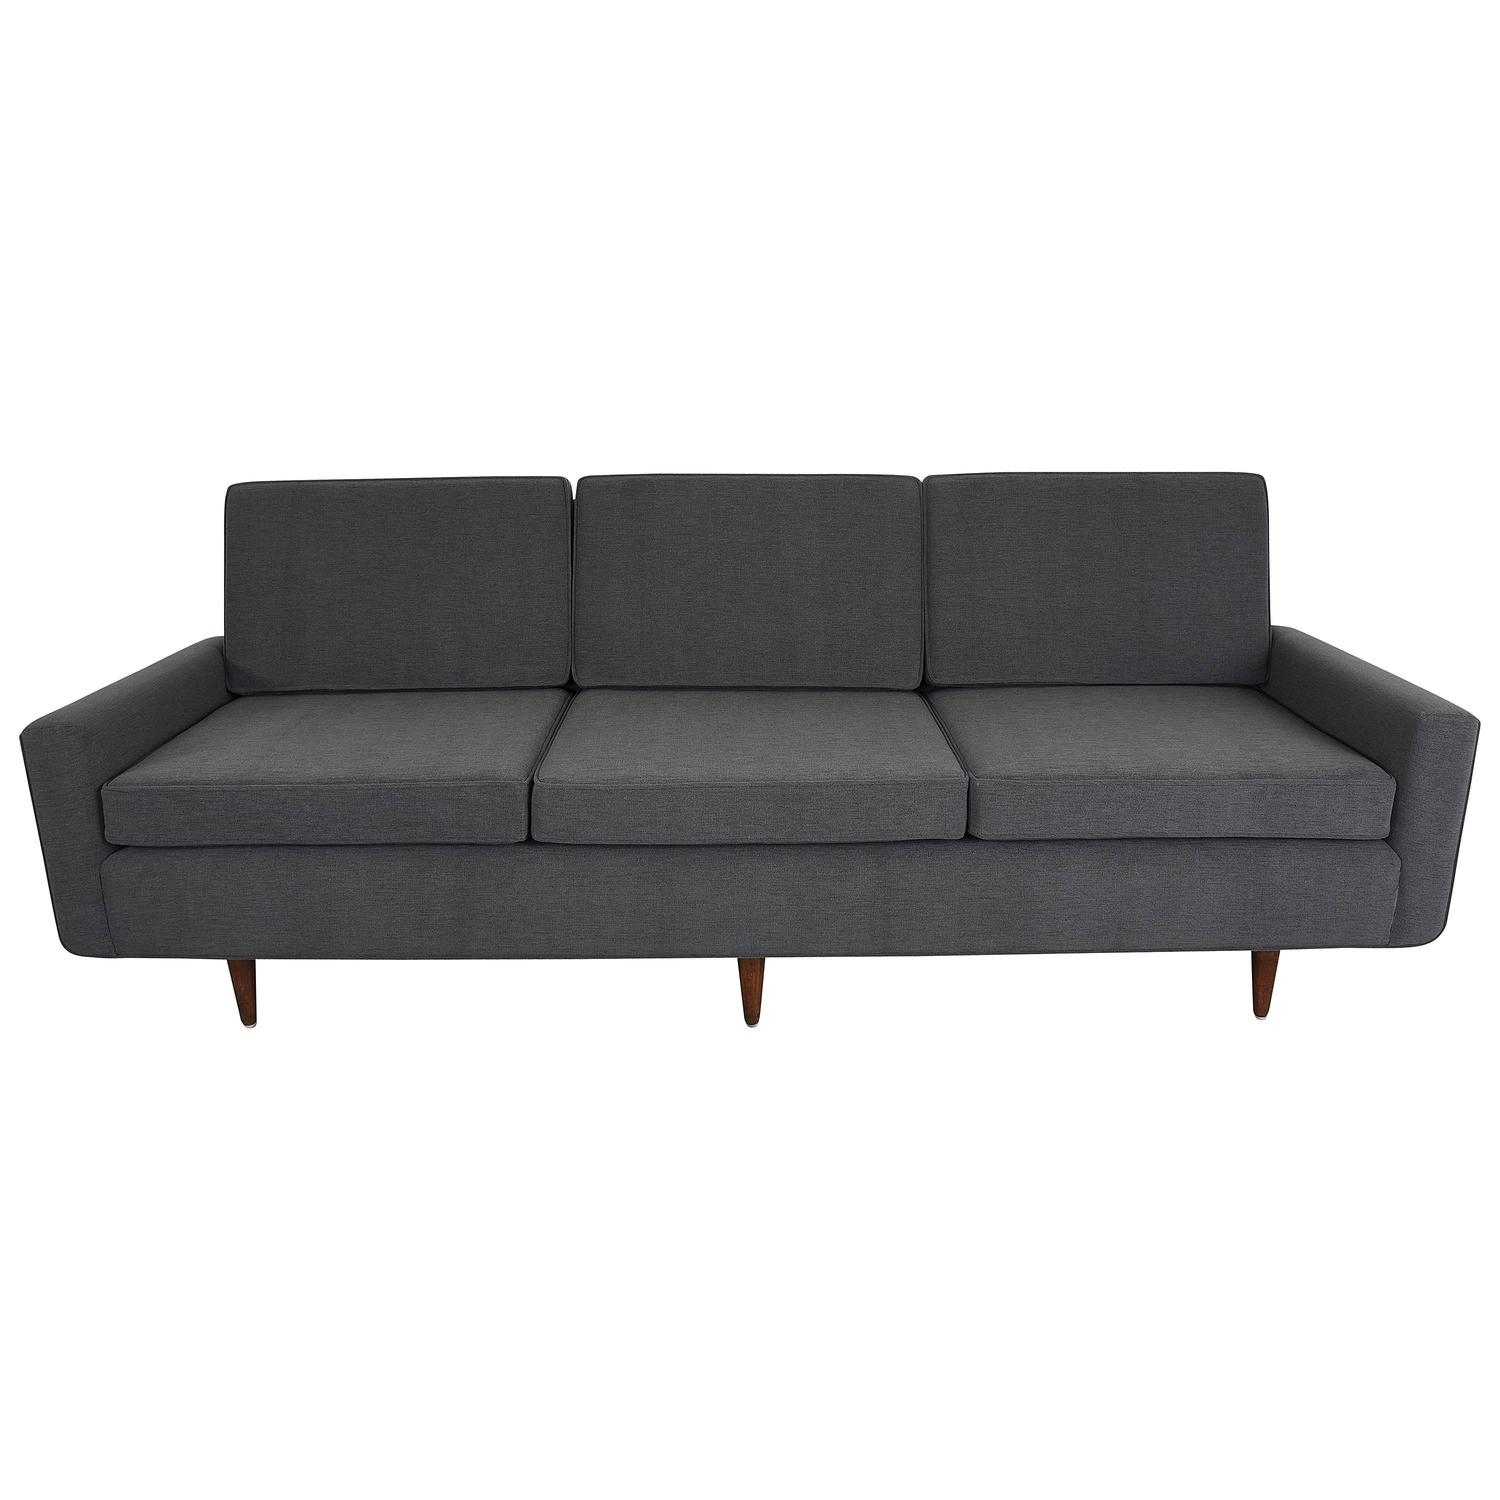 Florence Knoll Sofa Three Seat Sofa Model 26 Pair Available For Intended For Florence Knoll Leather Sofas (Image 4 of 15)